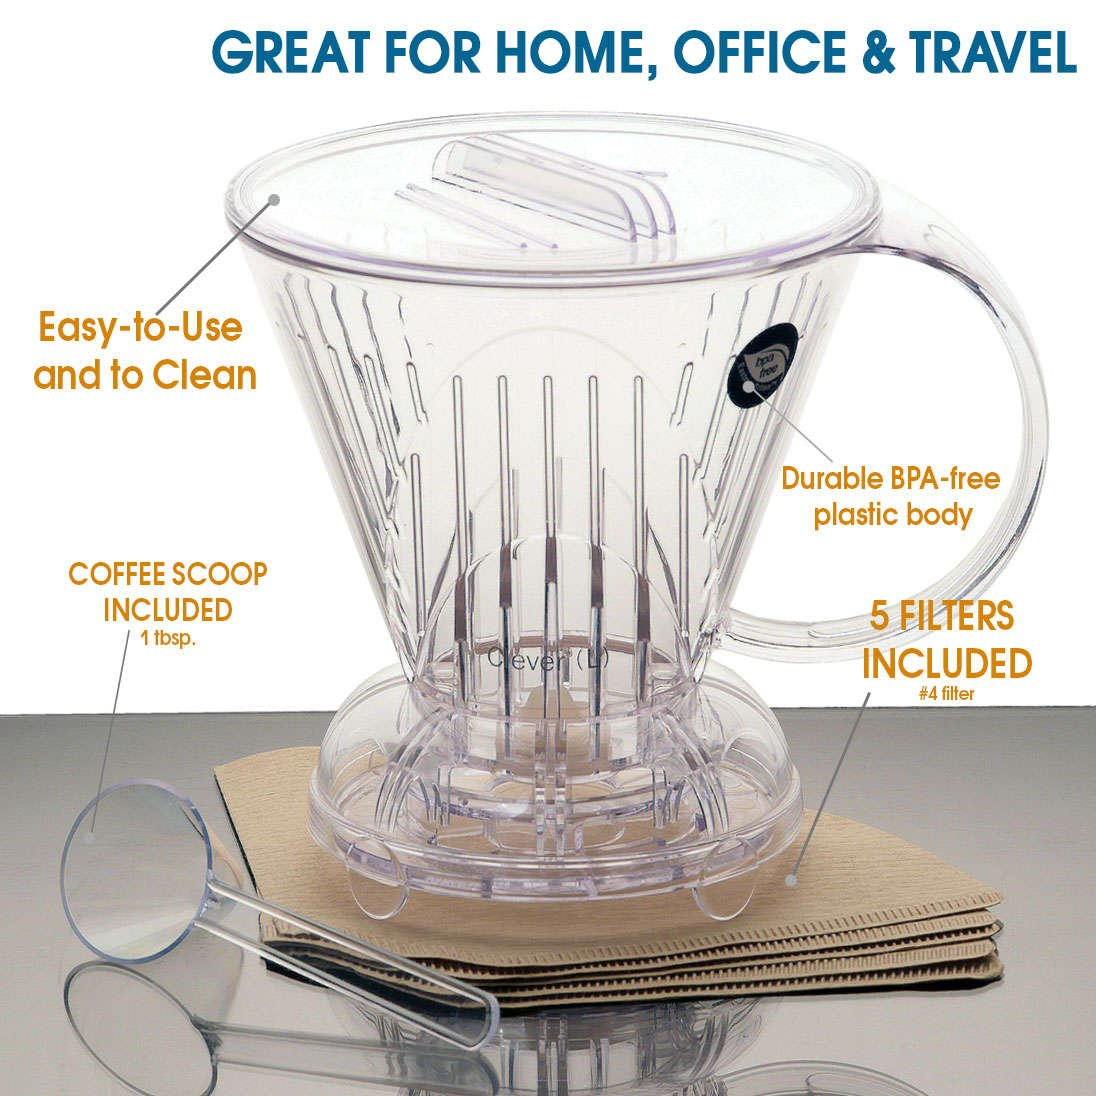 Clever Dripper, Large (18 oz.) - Full Immersion Coffee Dripper